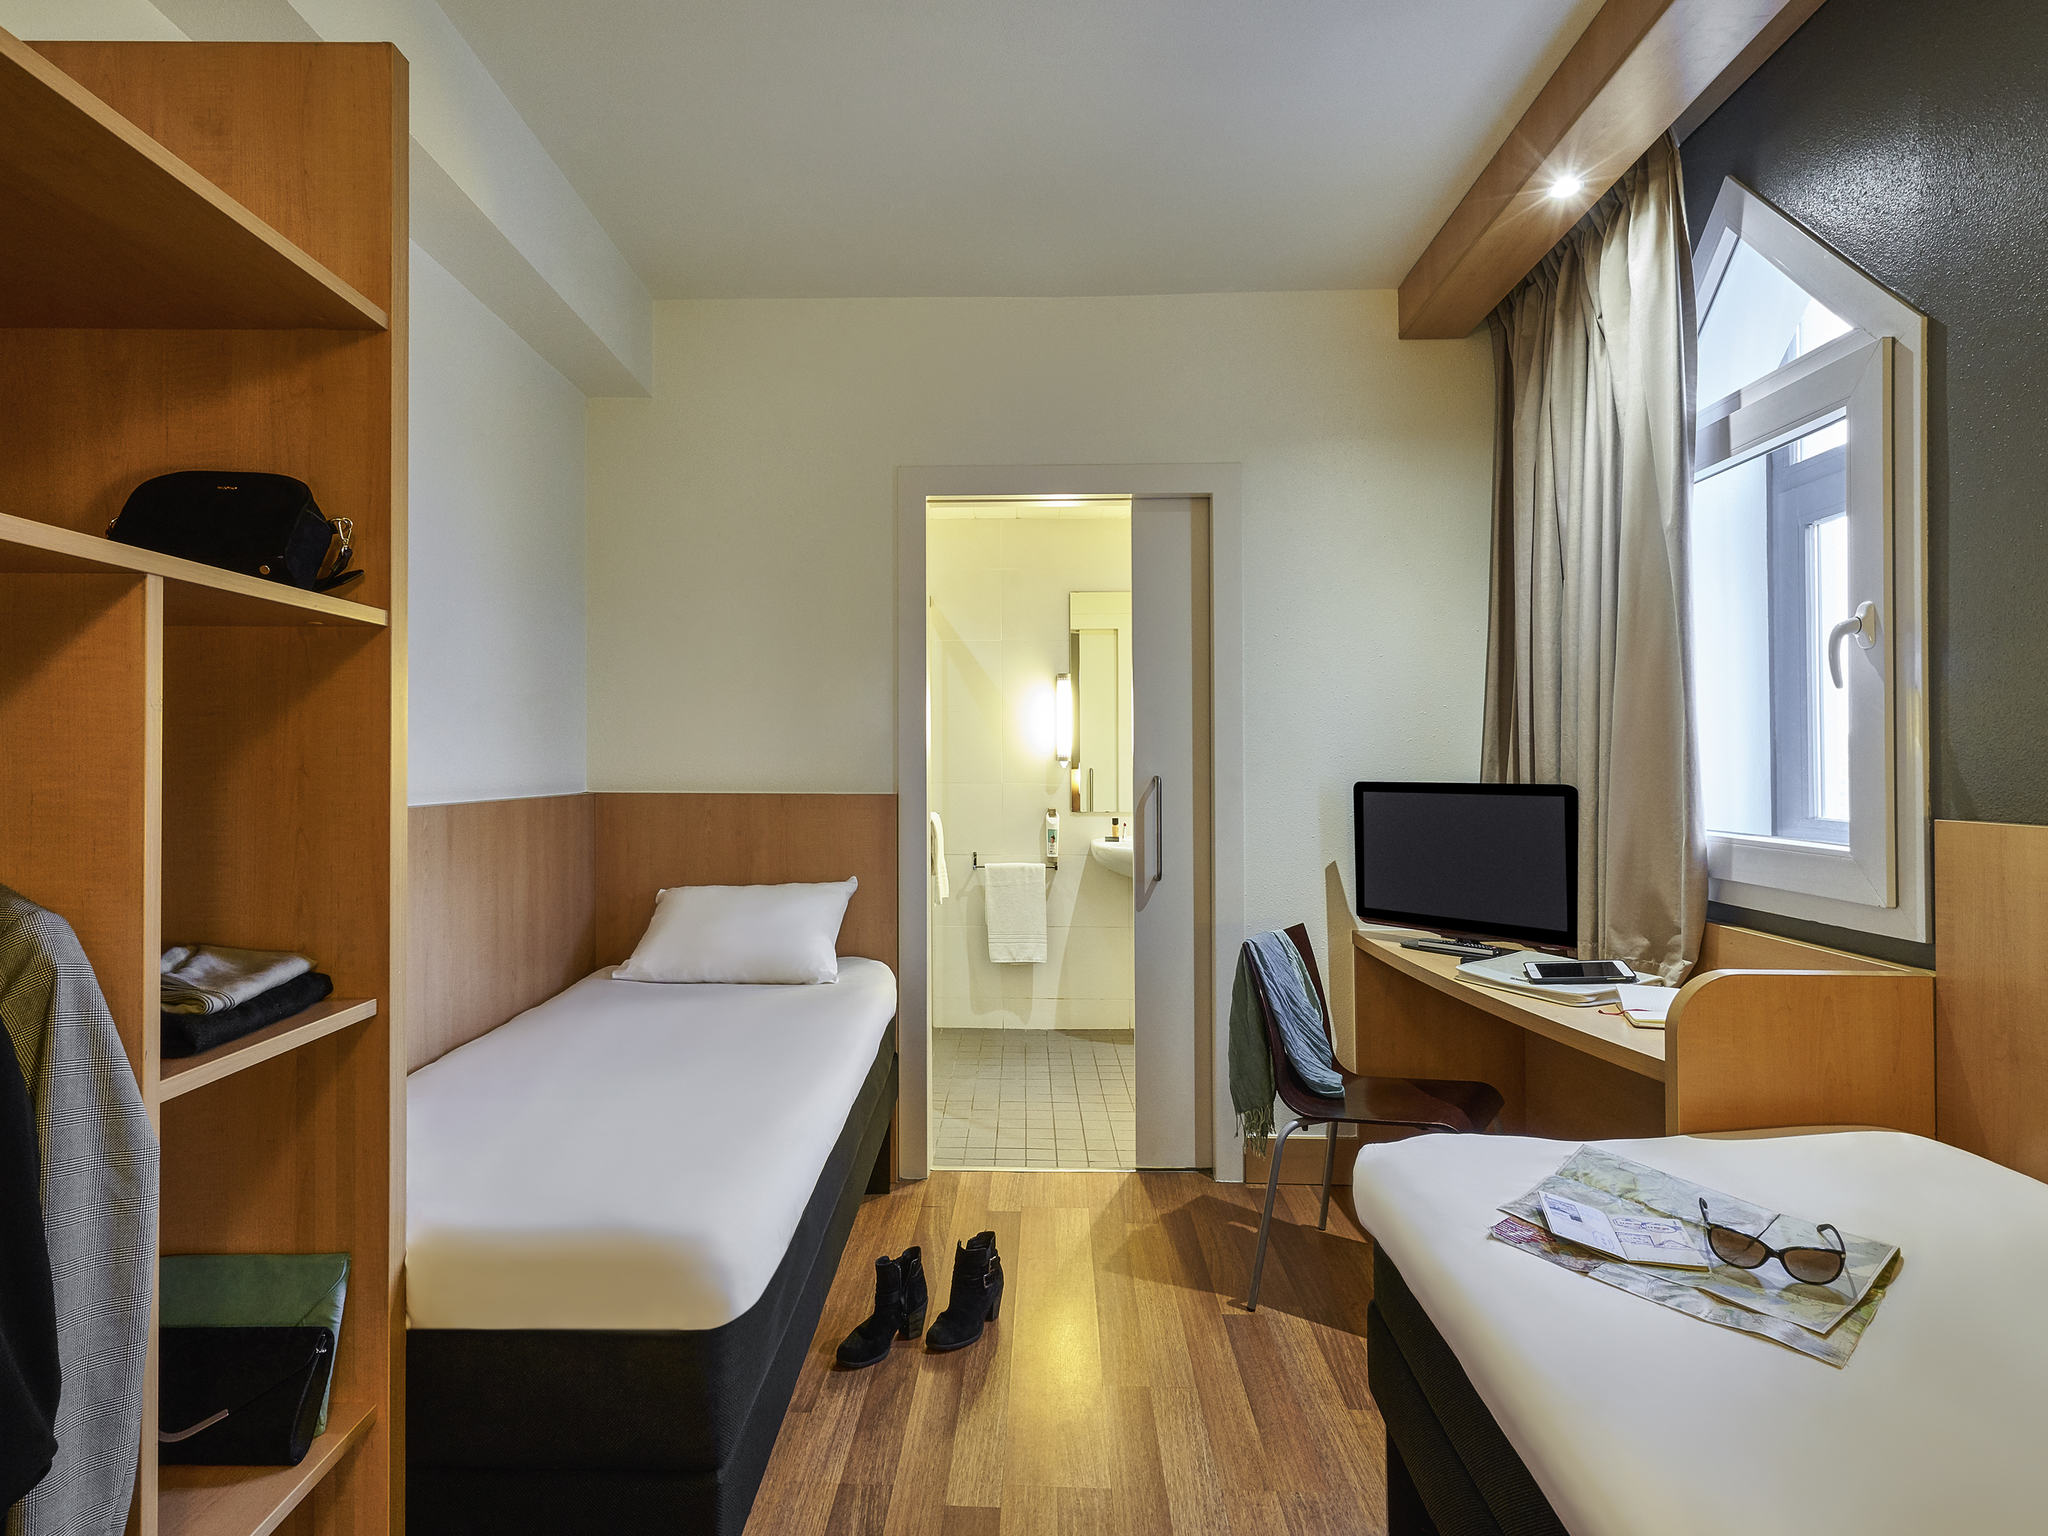 Hotel in BARCELONA - Book your economic ibis hotel in Barcelona